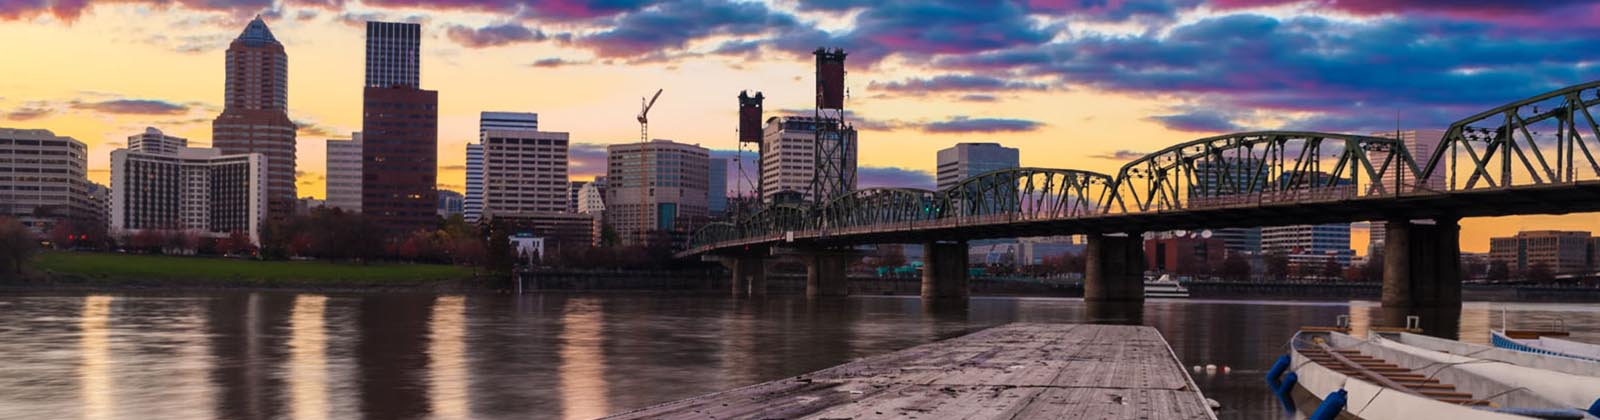 Portland city skyline and Hawthorne Bridge at dusk